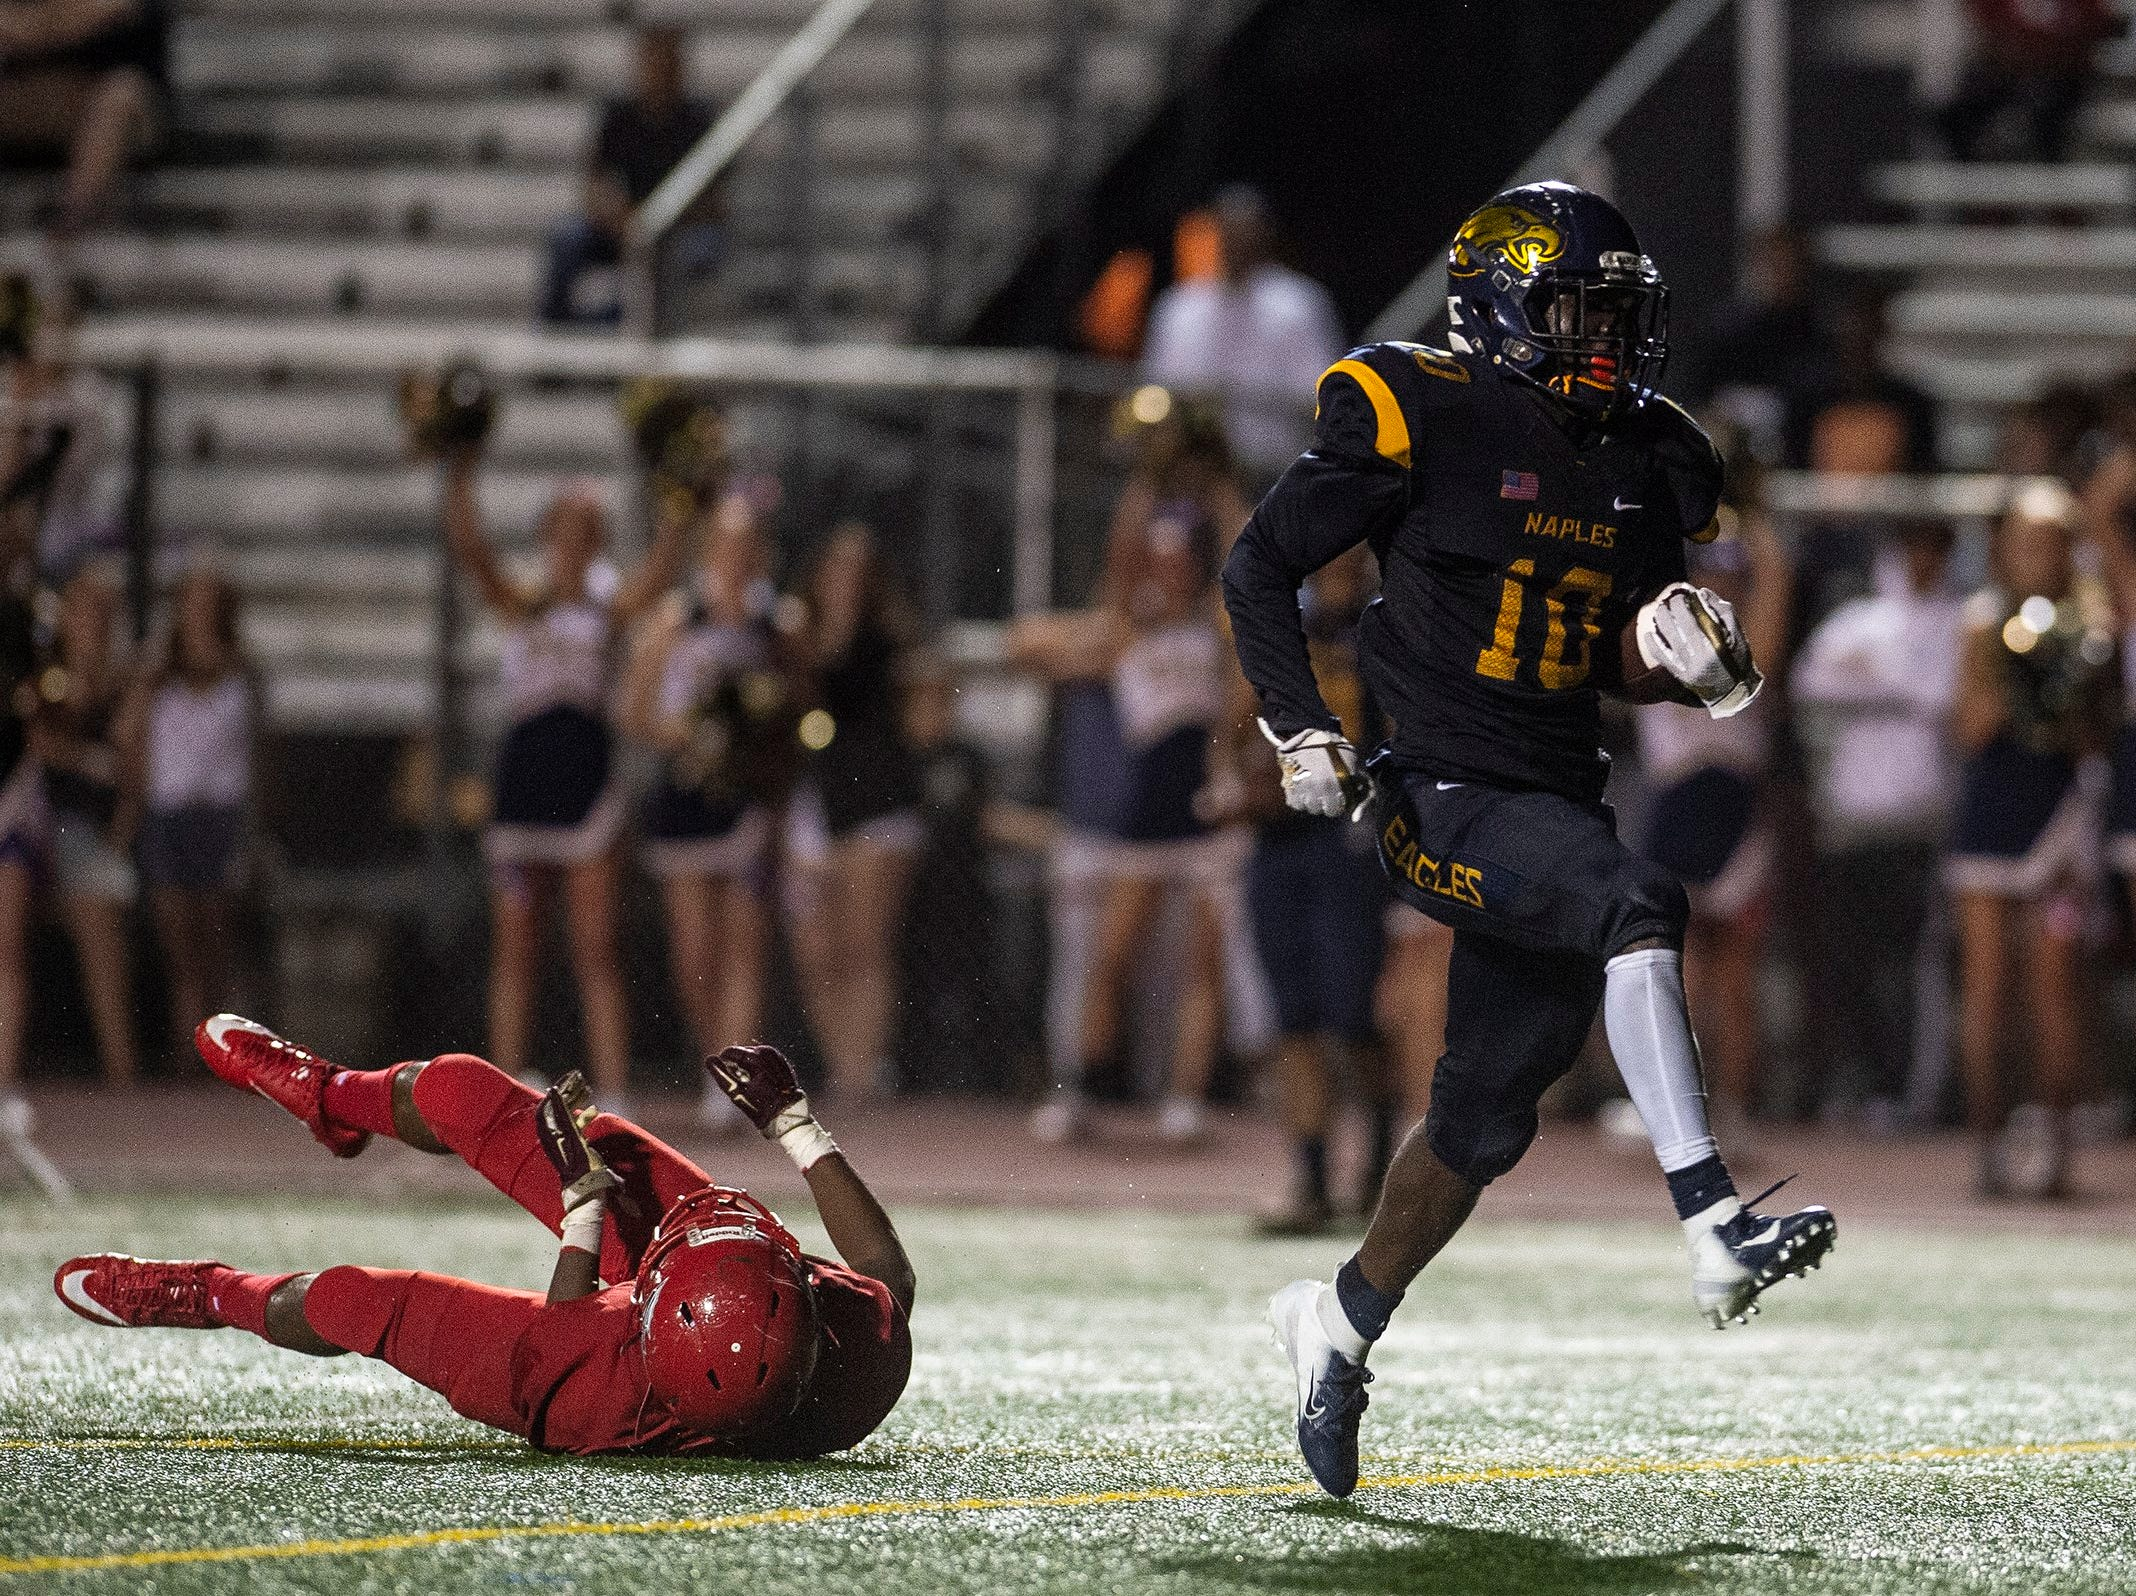 Naples High School's D'Andre St Jean shakes off a tackle that results in a touchdown run during a game against Immokalee High School in Naples, Fla. on Friday, September 21, 2018.